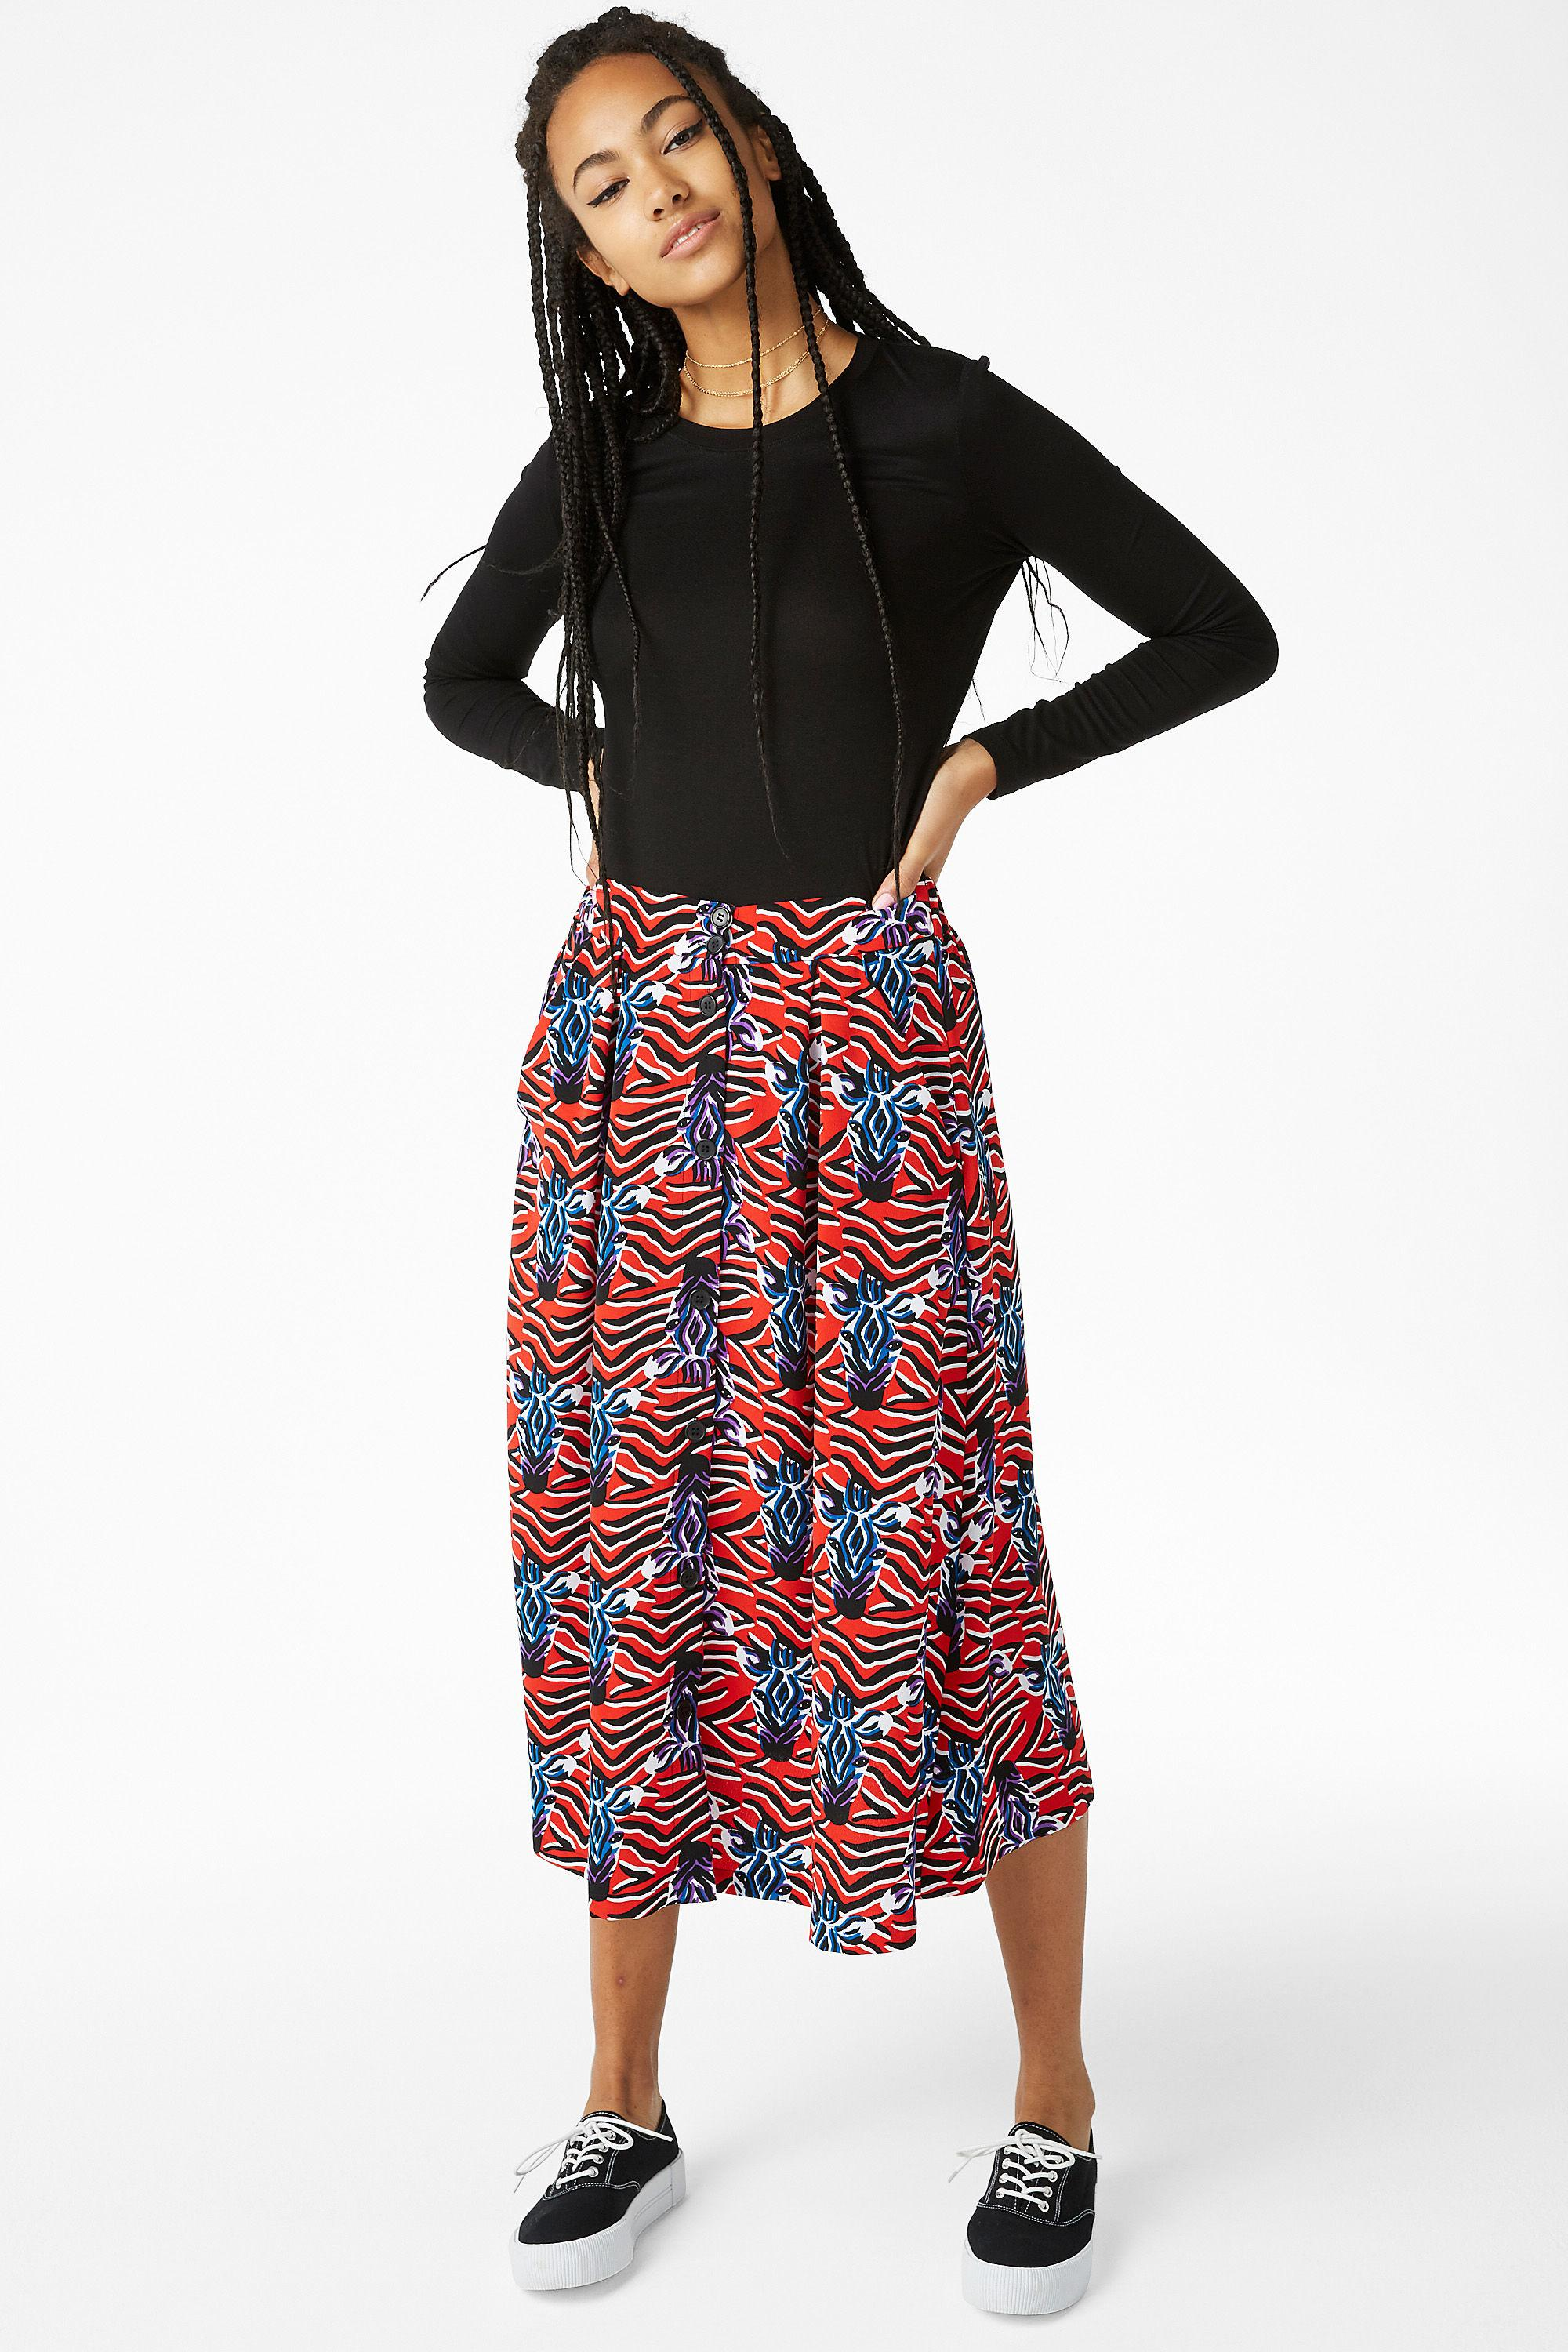 7be585e0ba Gallery. Previously sold at: Monki · Women's Midi Skirts